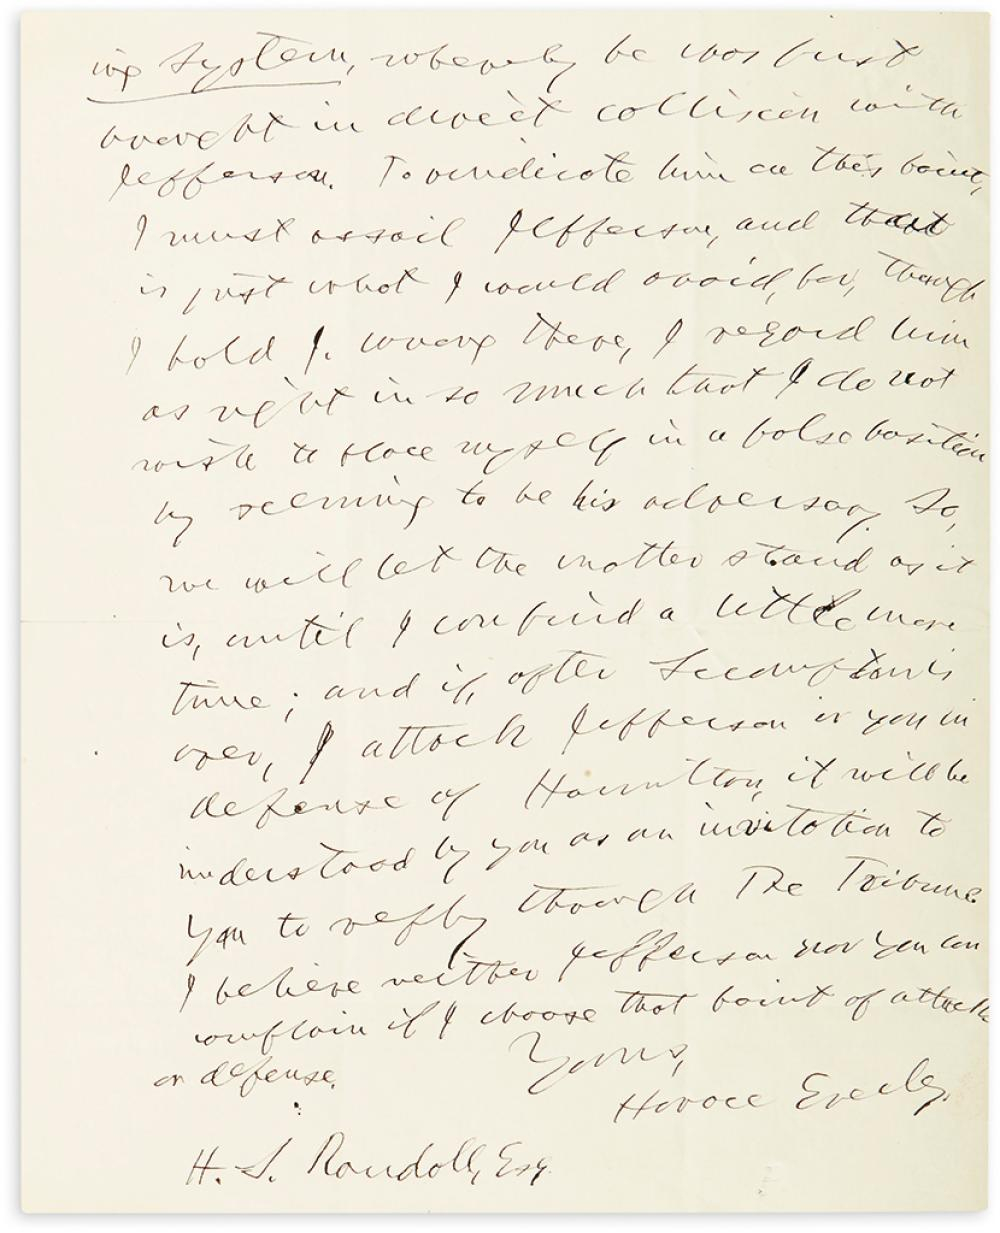 GREELEY, HORACE. Autograph Letter Signed, to H.S. Randol,